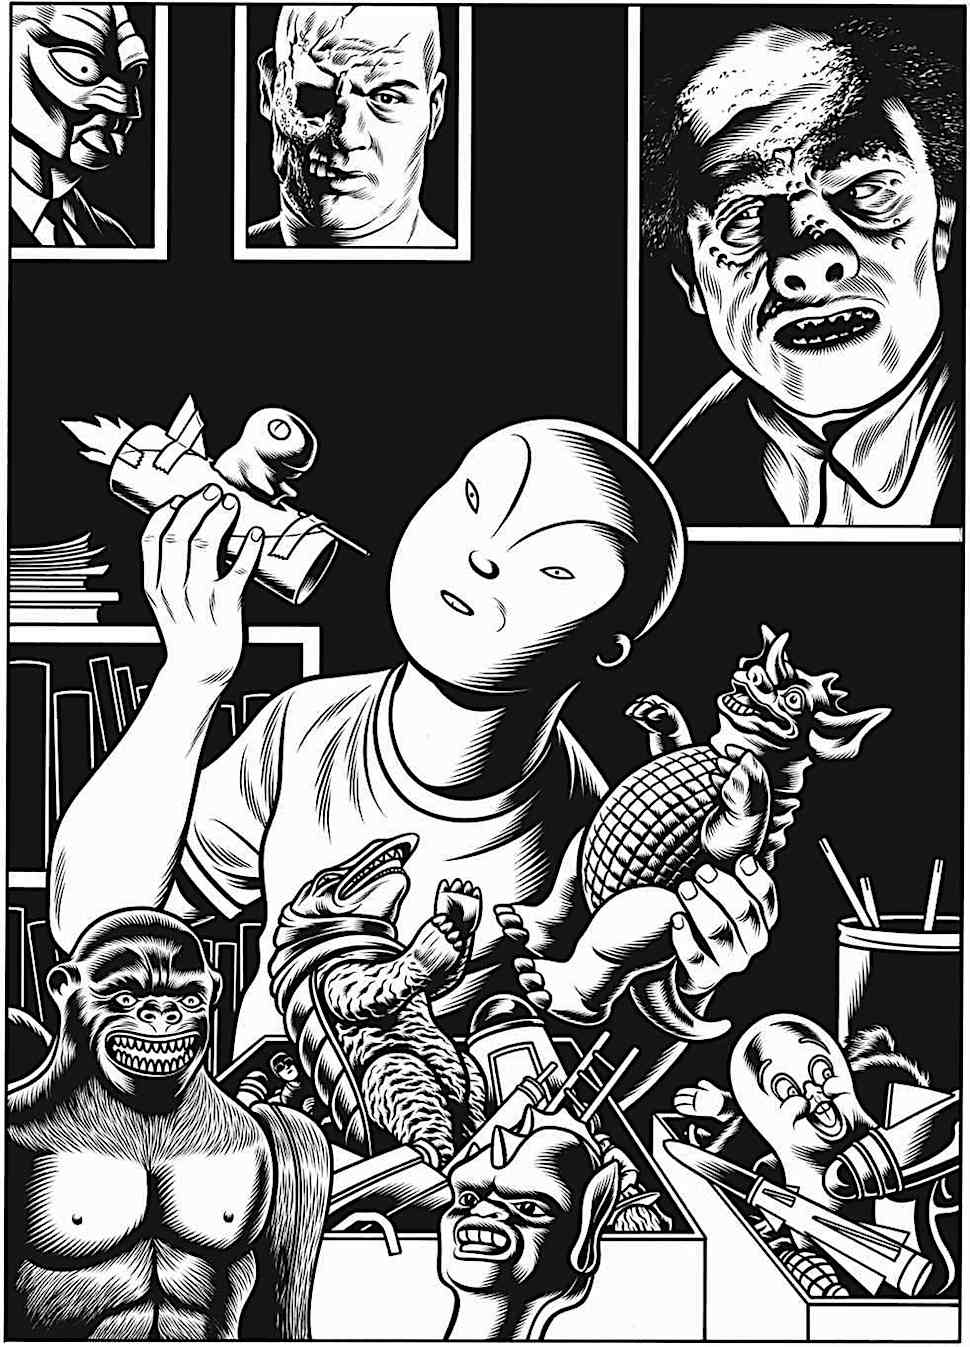 Charles Burns' Big Baby playing with his toys